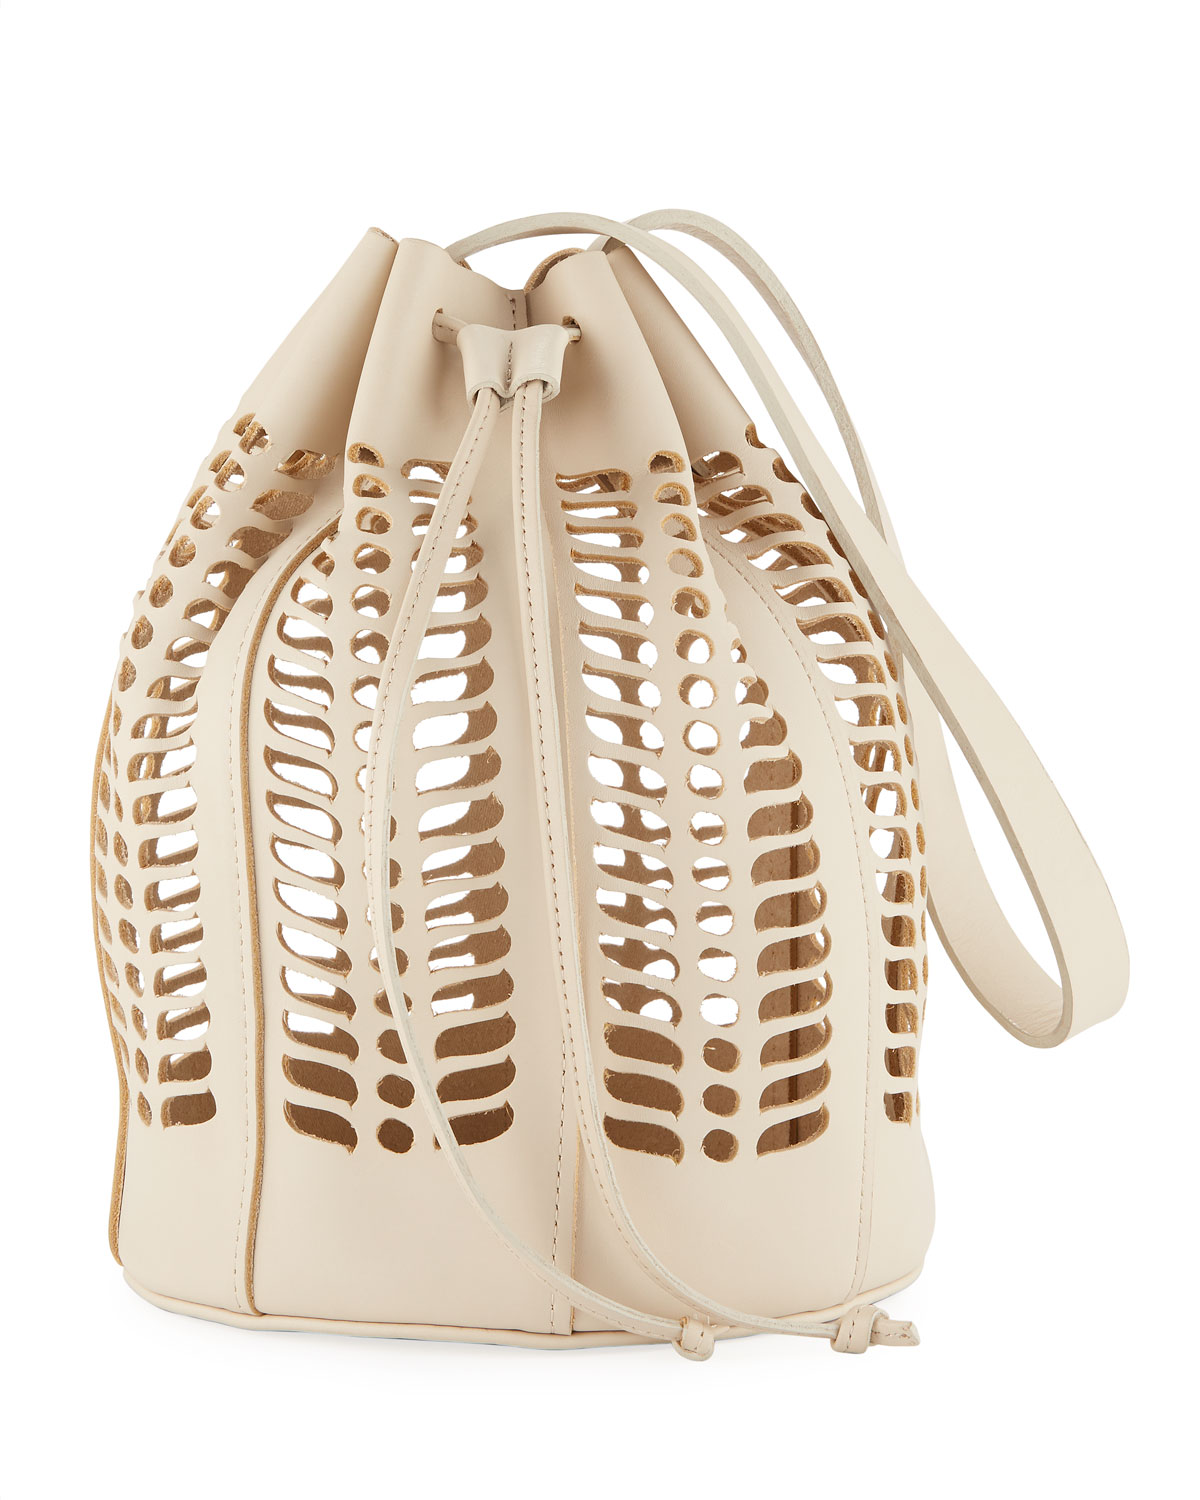 Leather Jute Die-Cut Bucket Bag